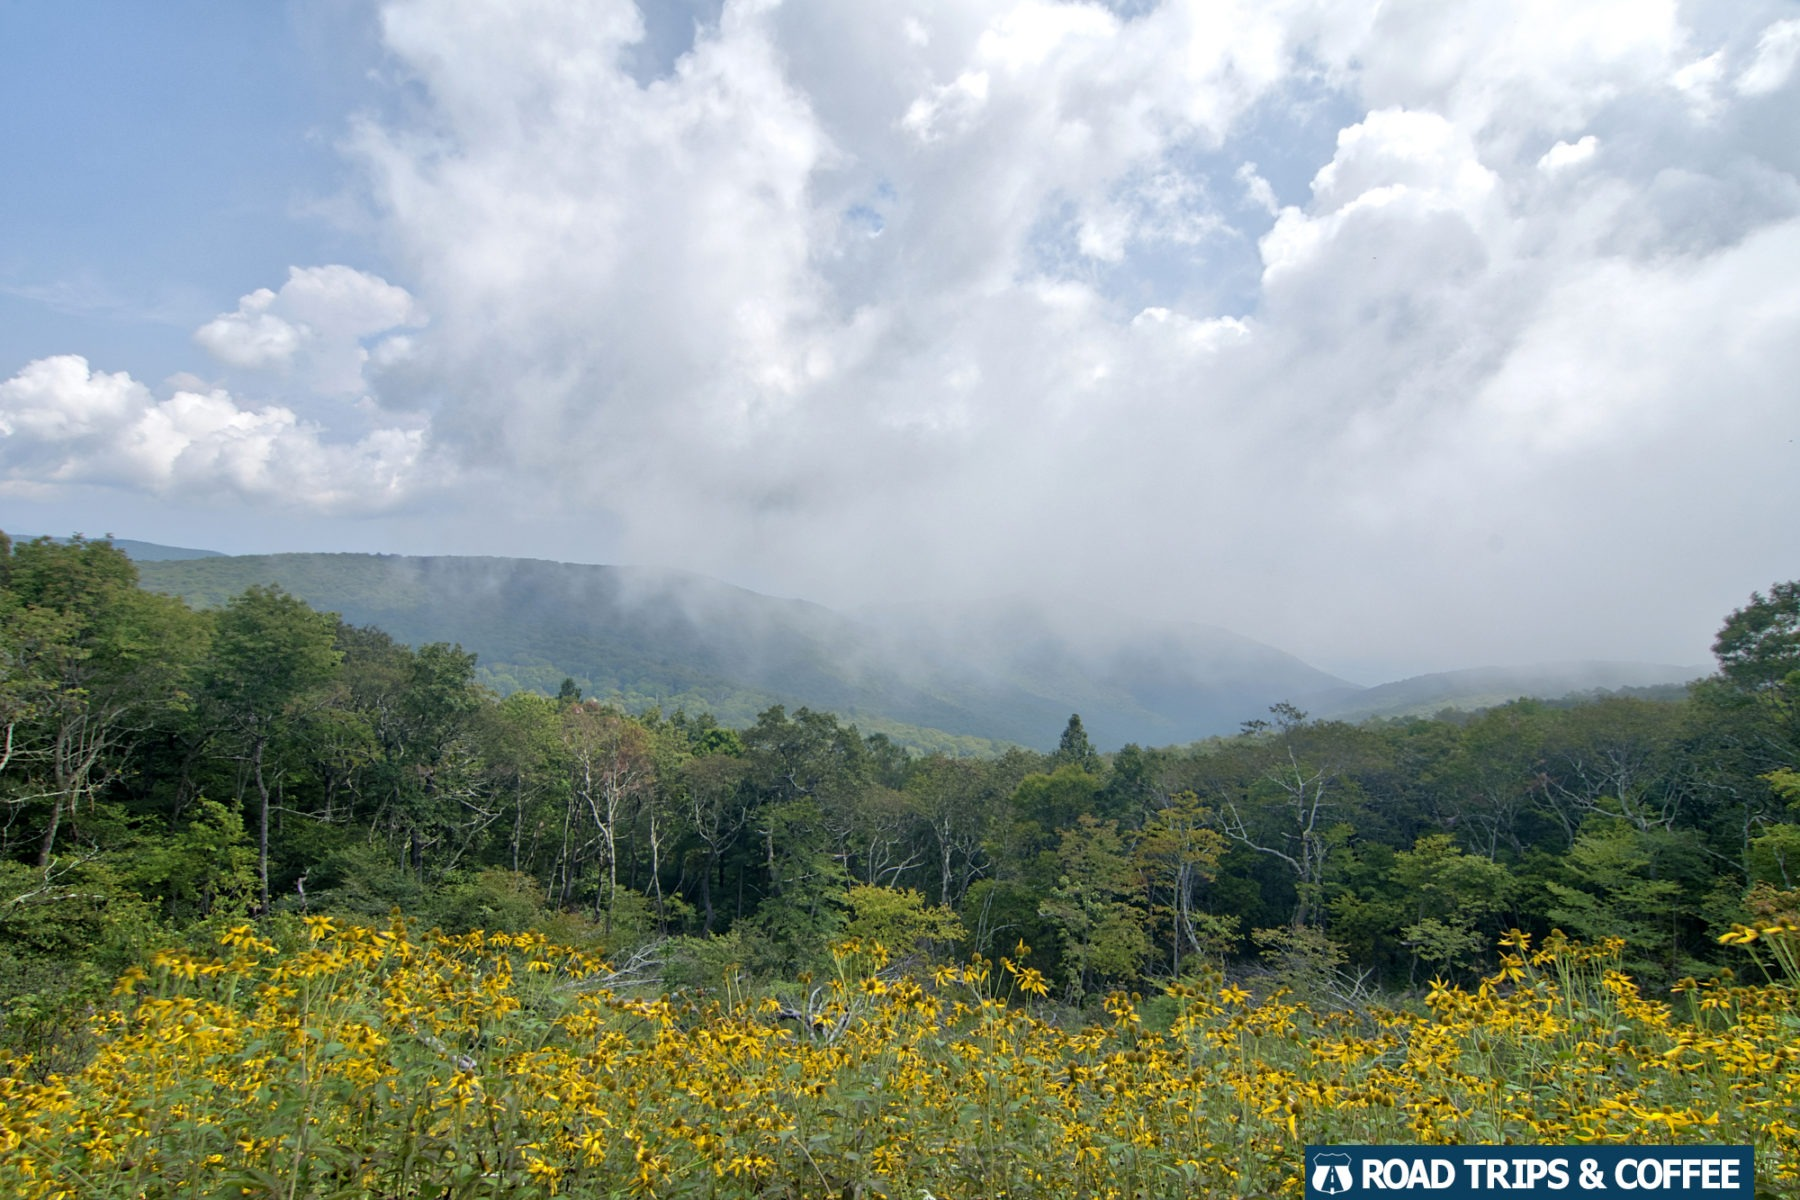 Fog clings to the mountain at the Apple Orchard Mountain Overlook on the Blue Ridge Parkway in Virginia